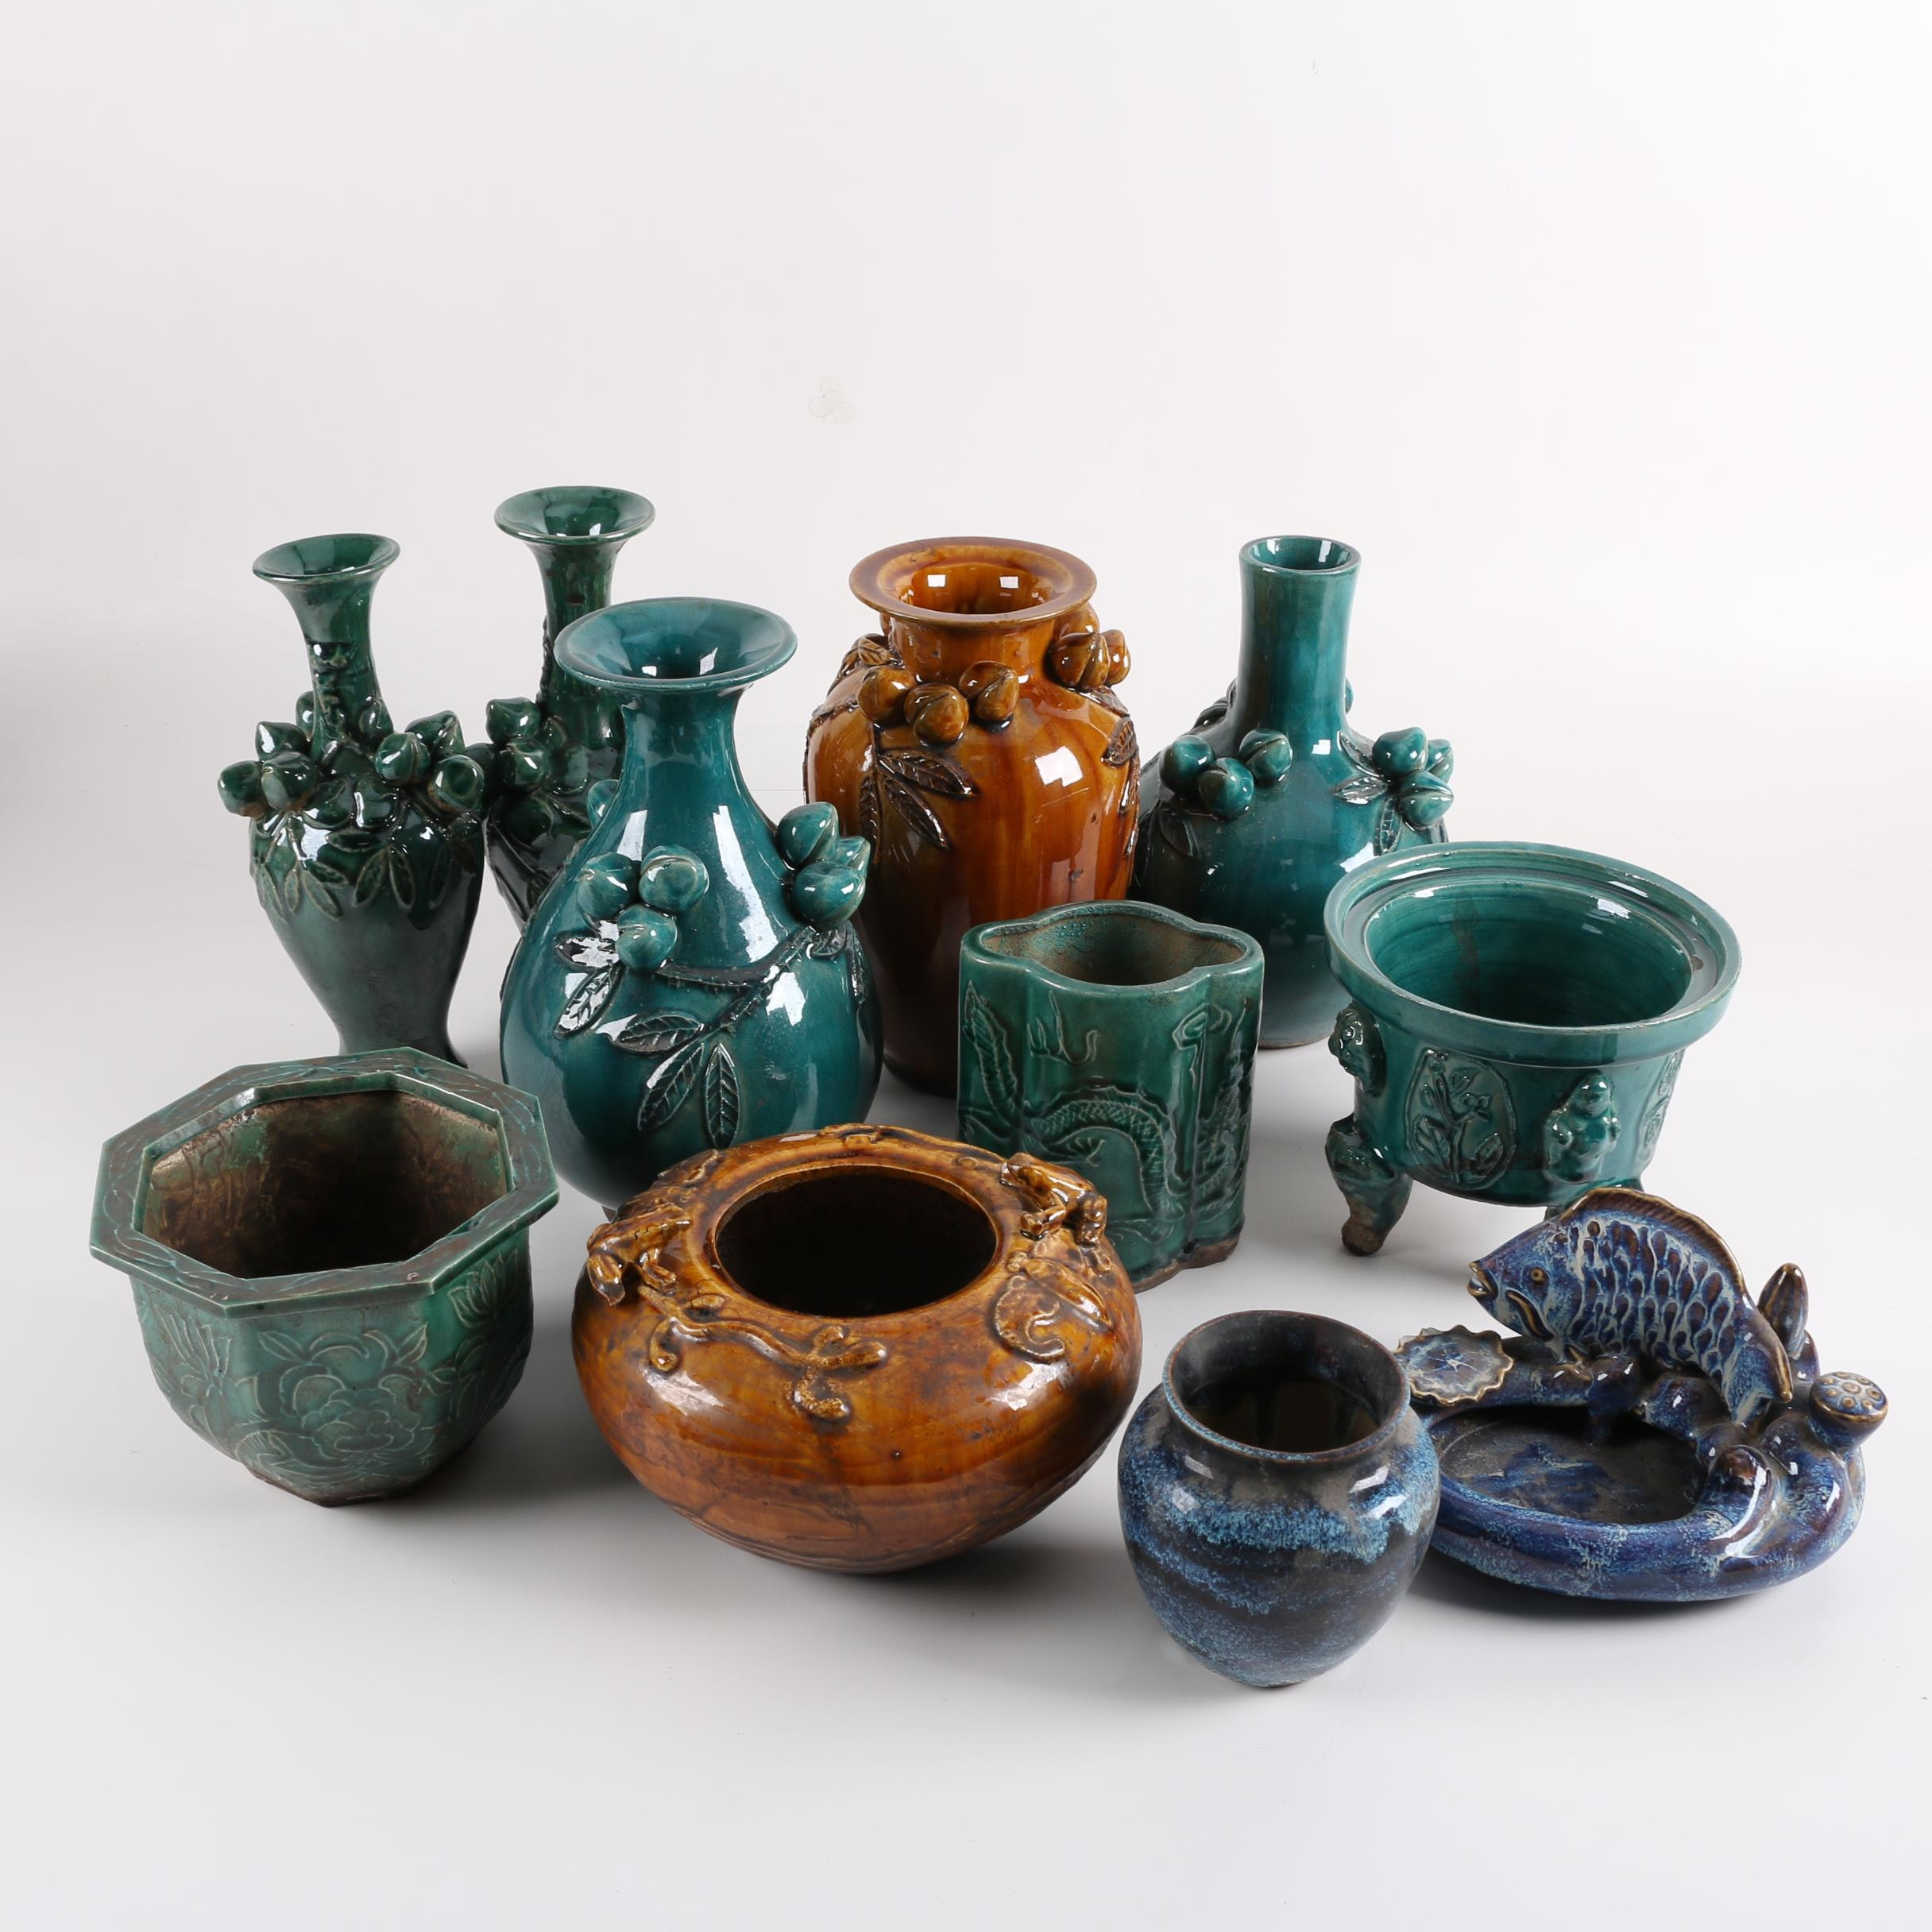 Chinese Ceramic Majolica-Style Vases and Planters